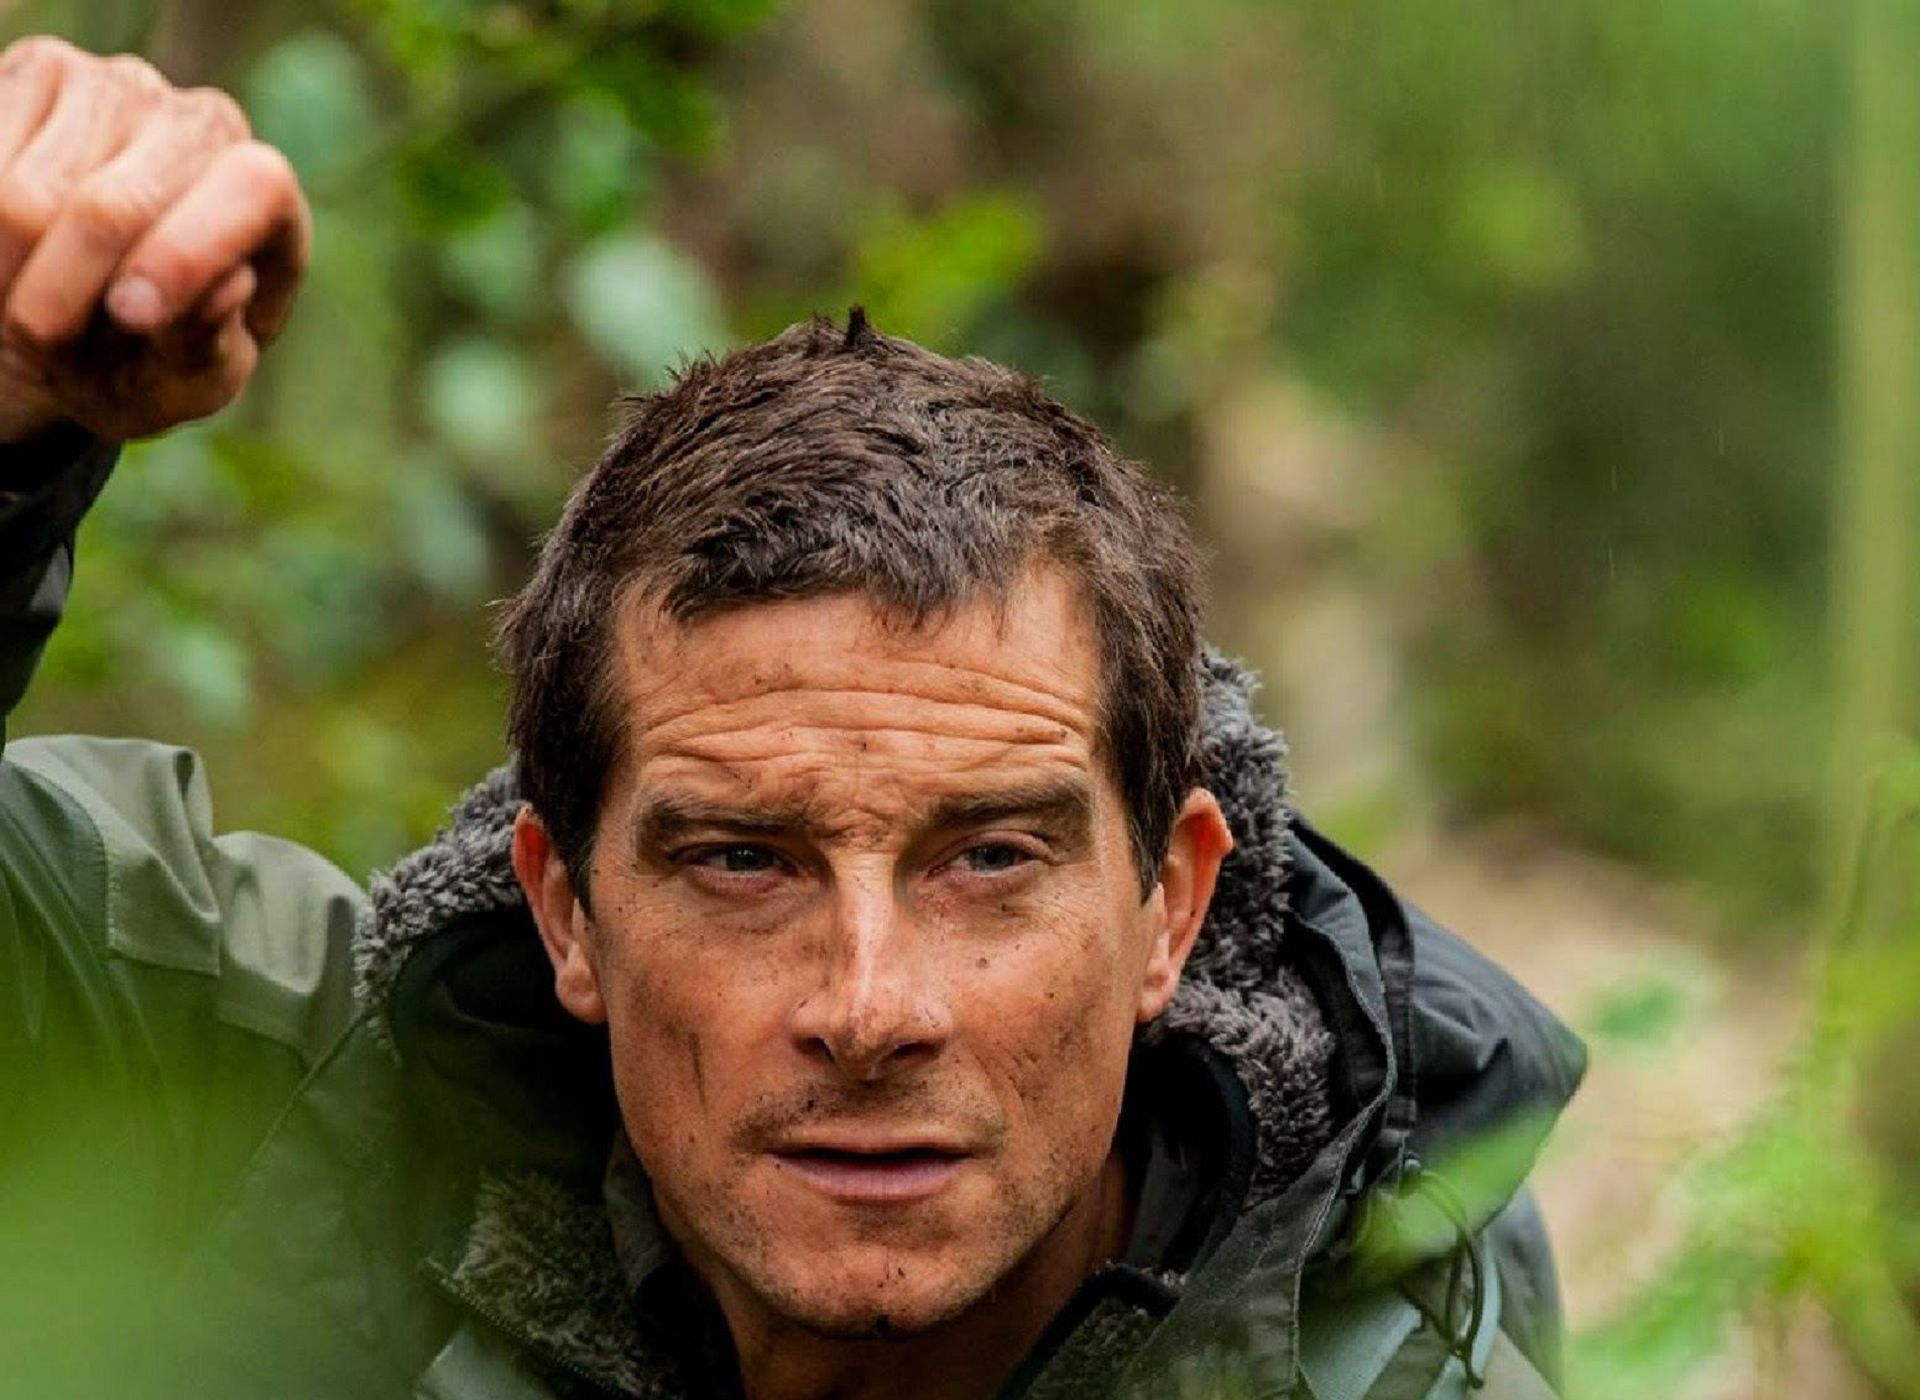 Bear Grylls Wallpaper Pack